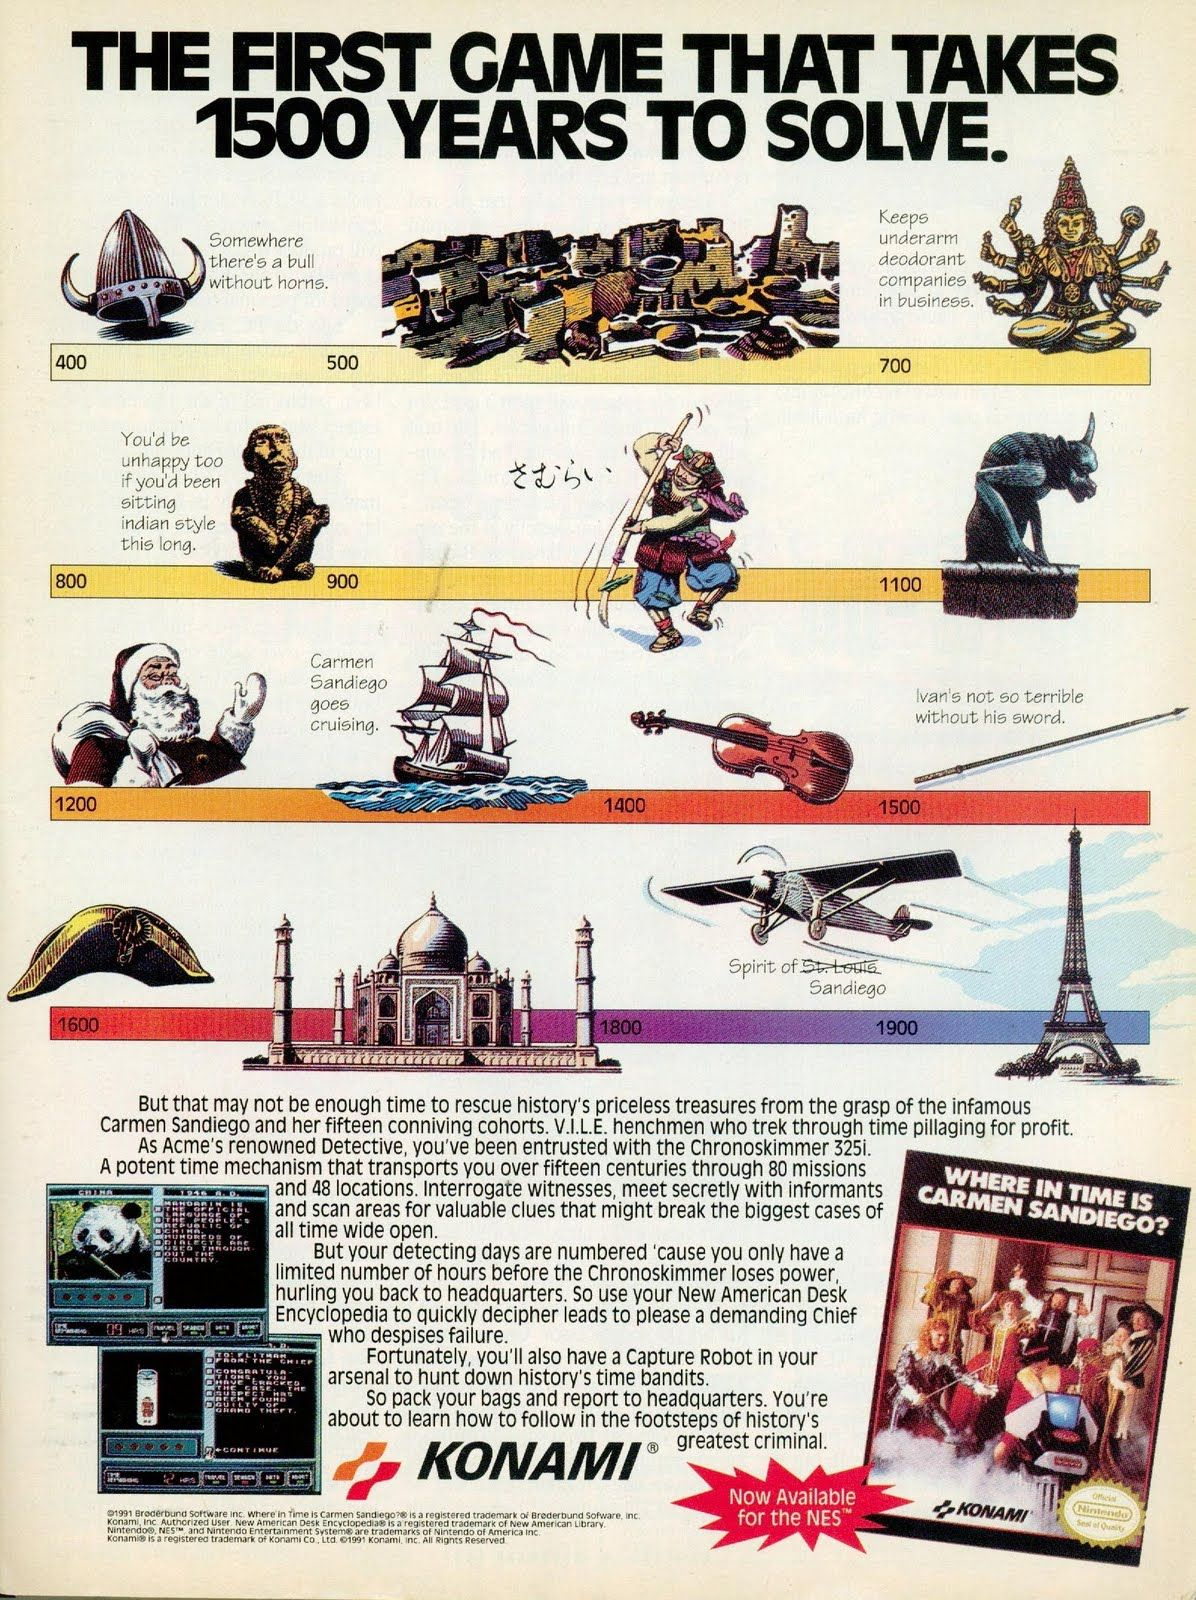 Carmen Sandiego (1991) AD - The First Game That Takes 1500 To Solve